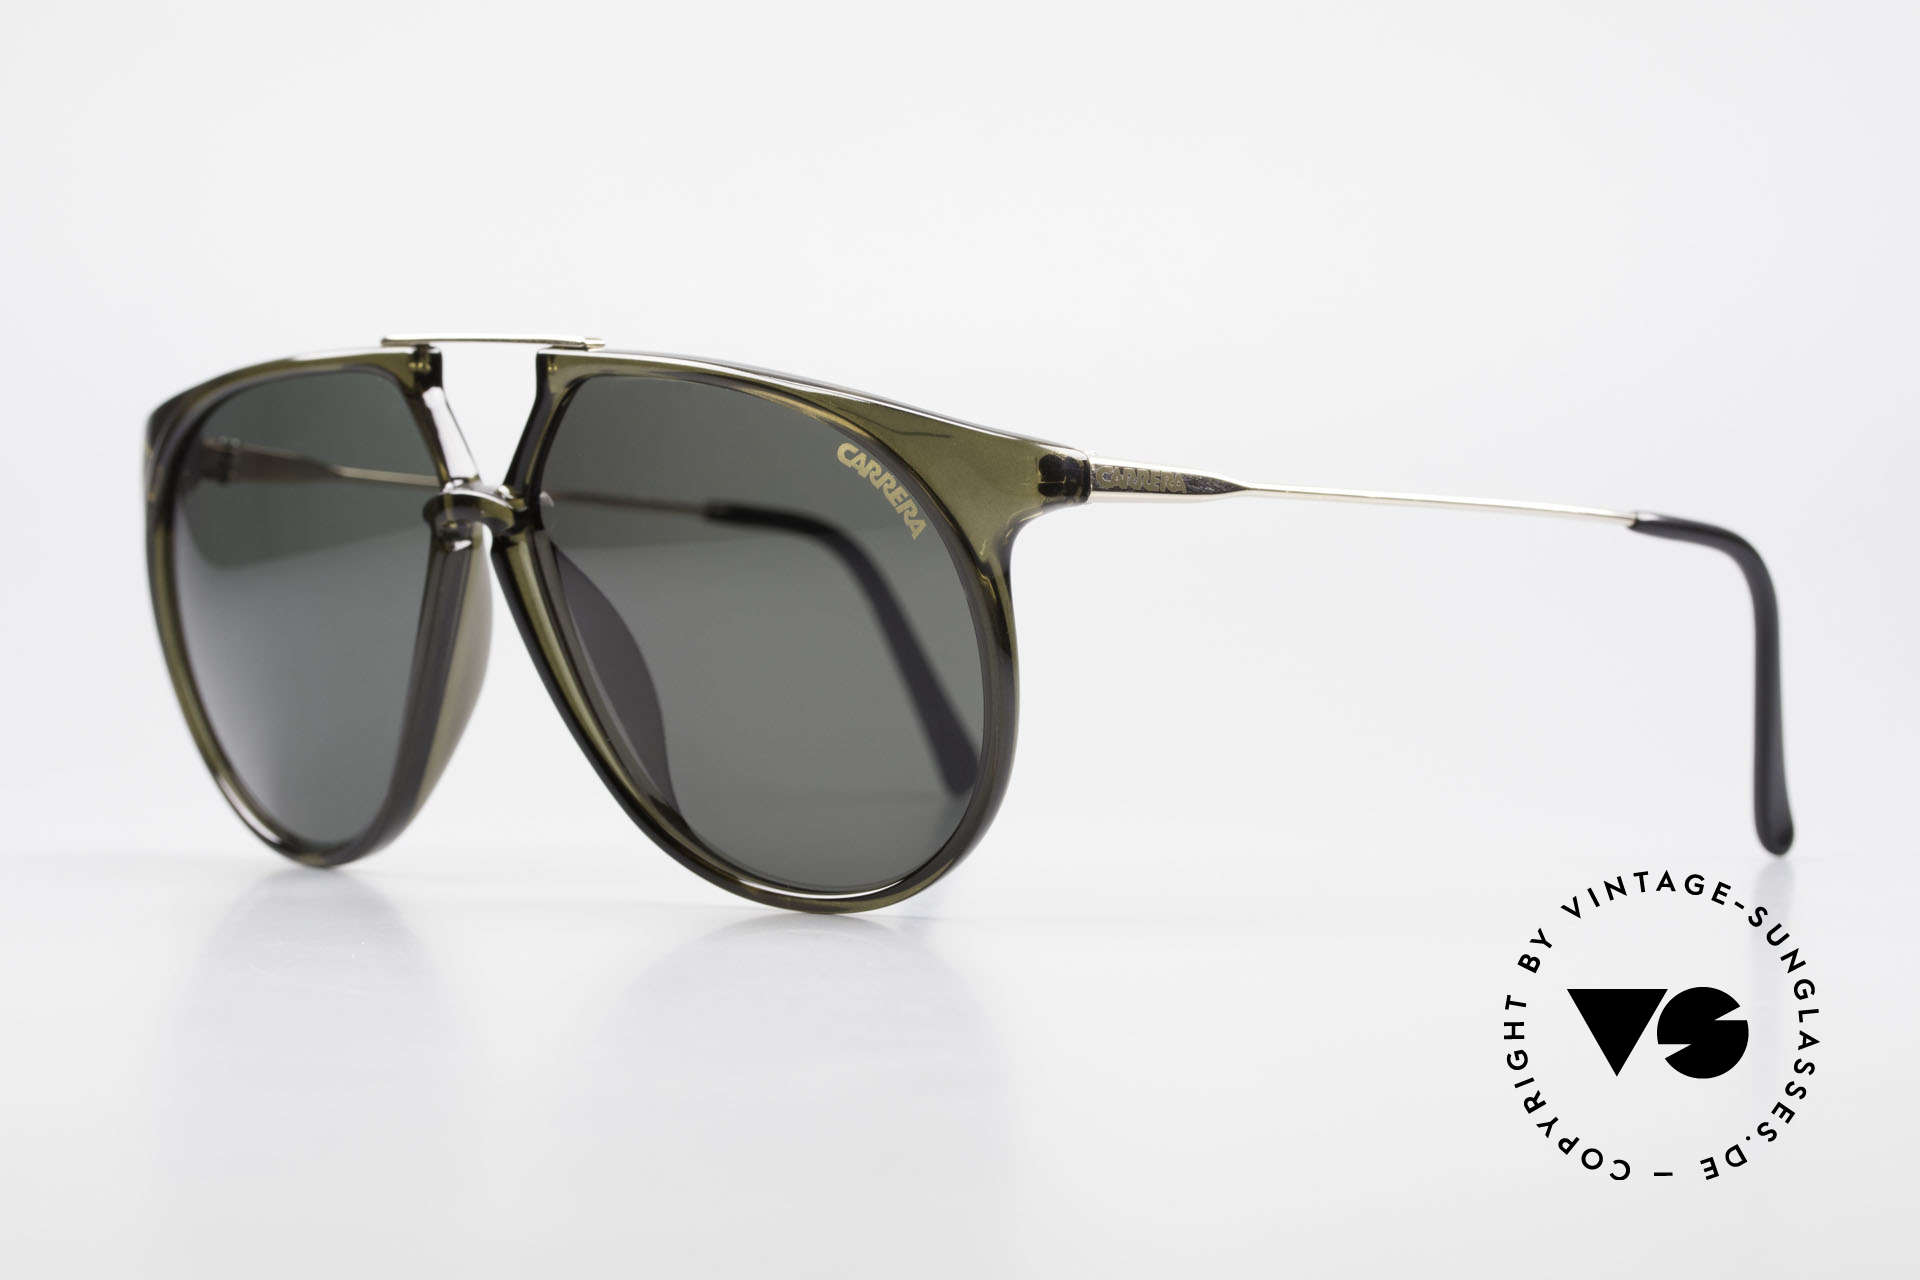 Carrera 5415 XL 80's Shades 2 Sets Of Lenses, high-end quality and 1st class wearing comfort, TOP!, Made for Men